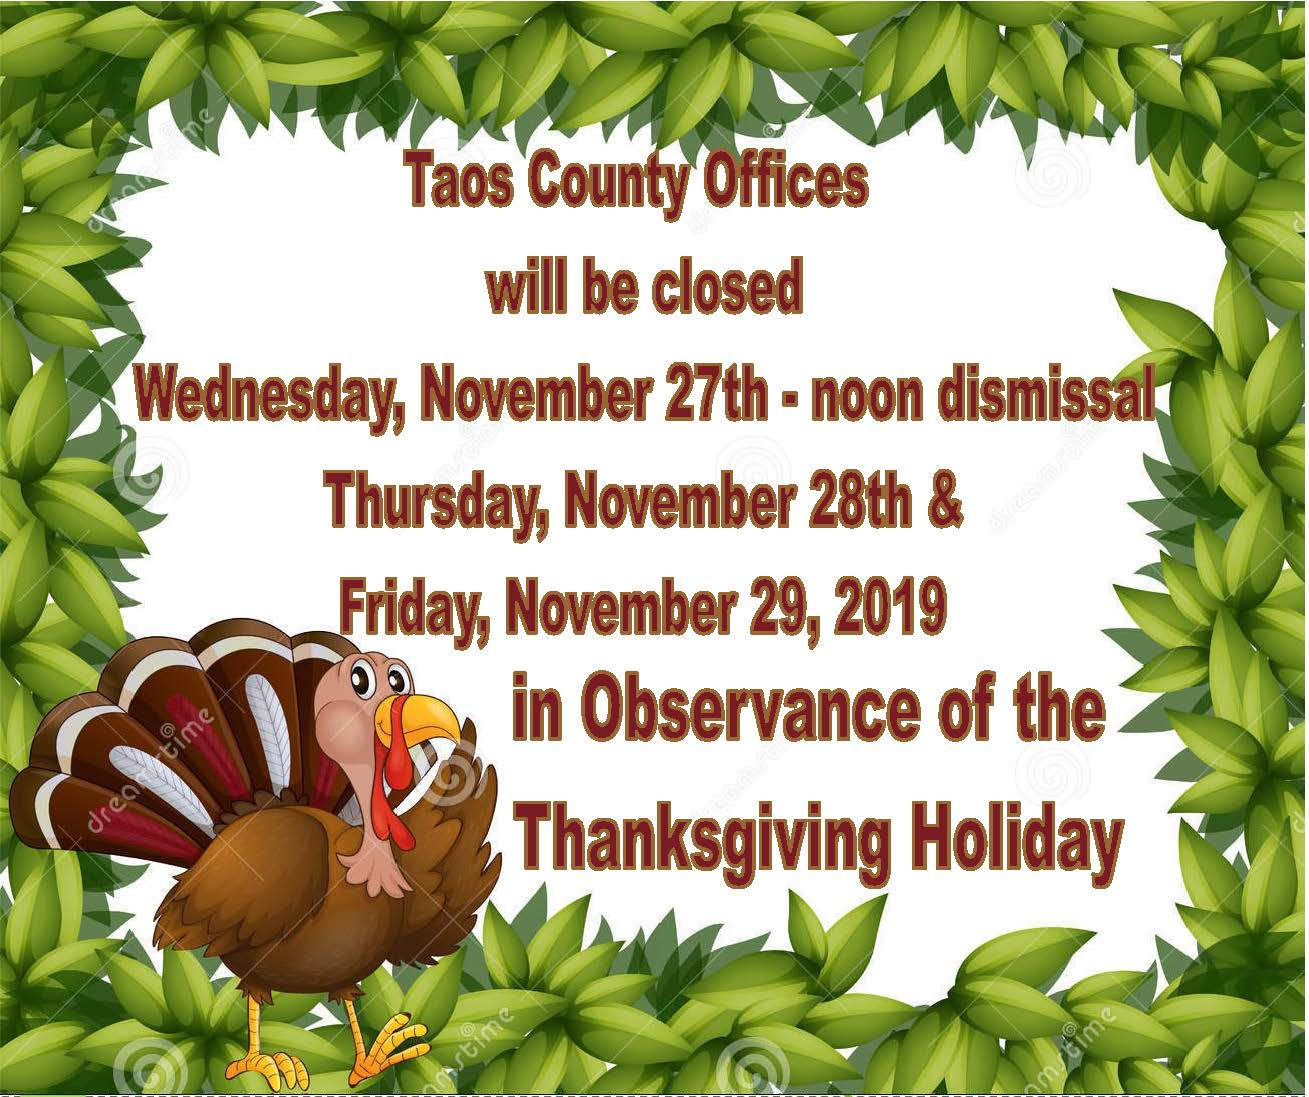 County Closure for Observance of Thanksgiving Holiday